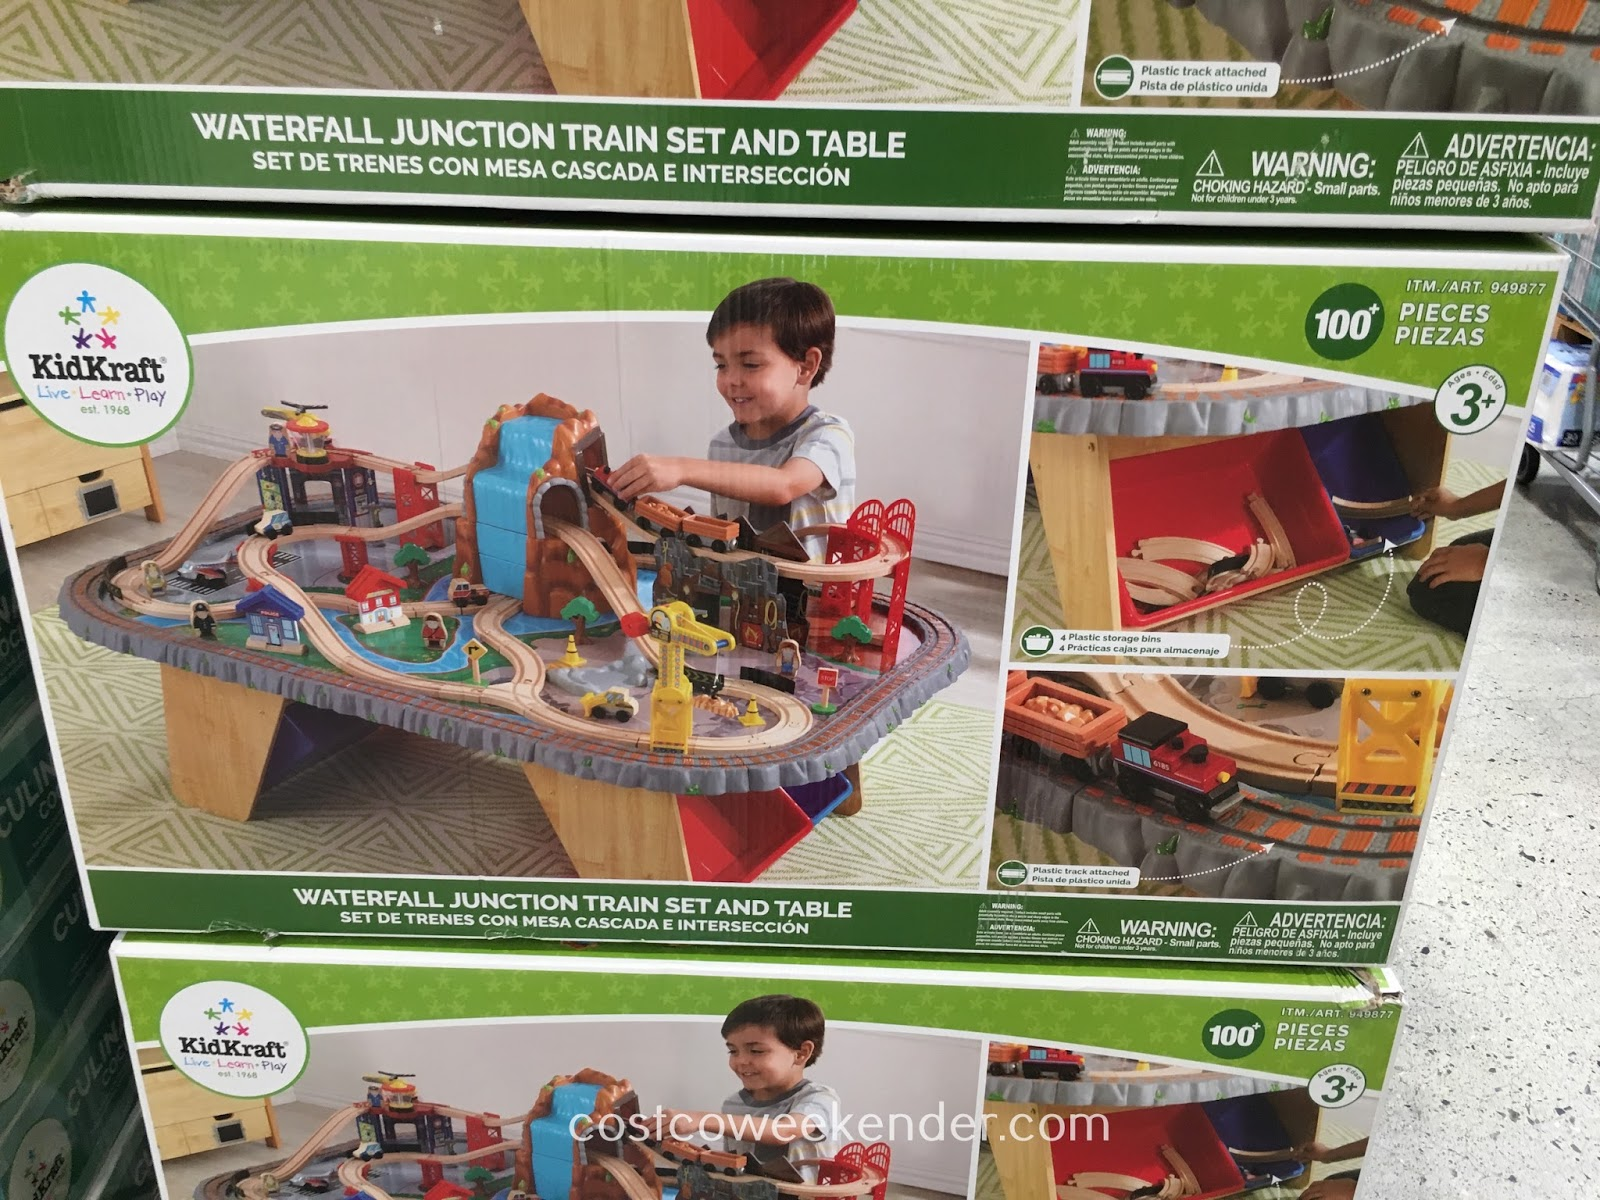 KidKraft Waterfall Junction Train Set and Table - Perfect for stimulating a young explorer's imagination